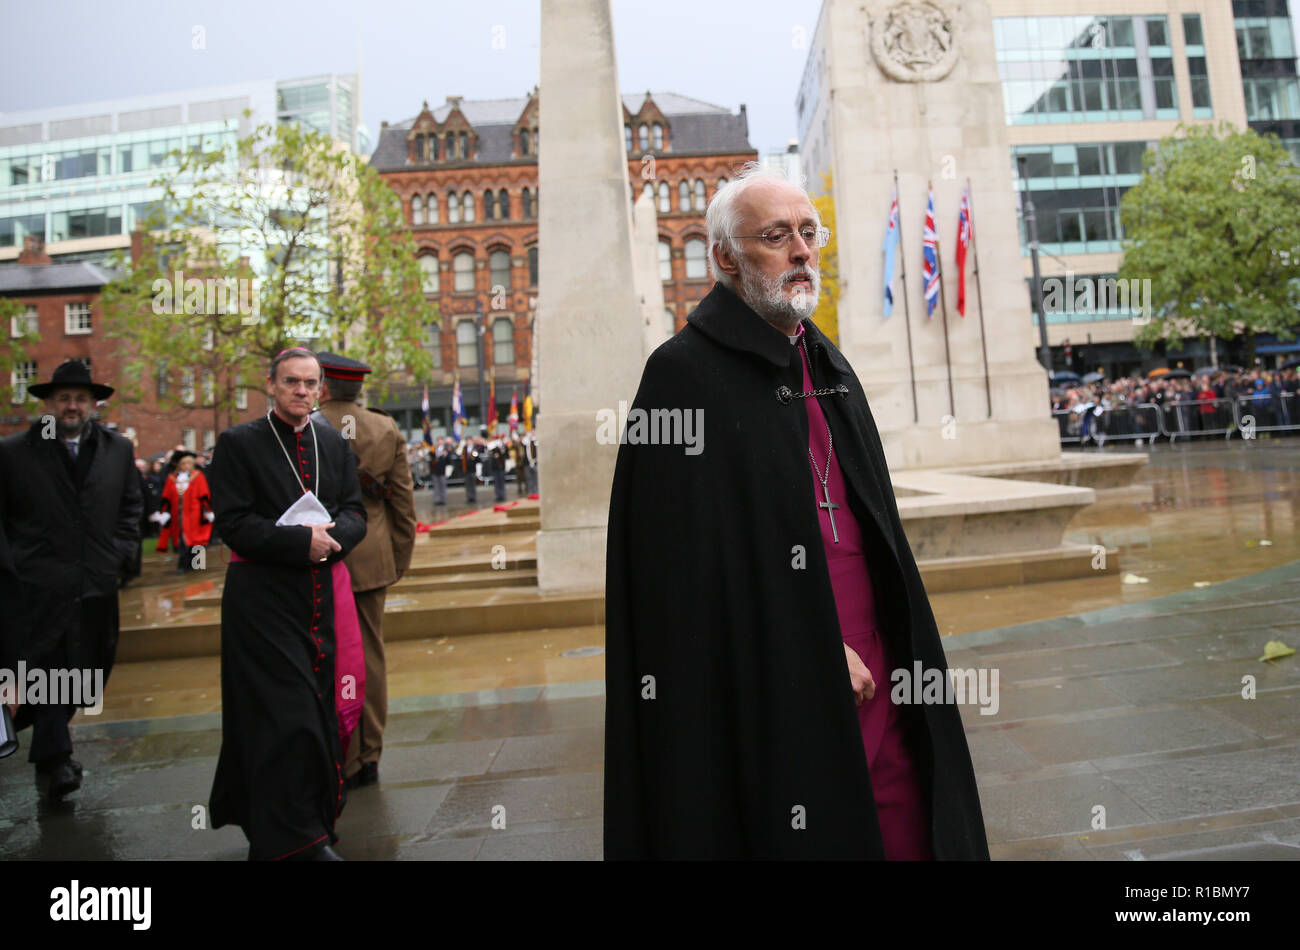 Manchester, UK. 11th Nov 2018. Veterans of conflict, serving members of the forces and members of the public take part in the service of remembrance marking 100 years since the end of WW!. The Cenotaph, Manchester, 11th November 2018 (C)Barbara Cook/Alamy Live News Stock Photo